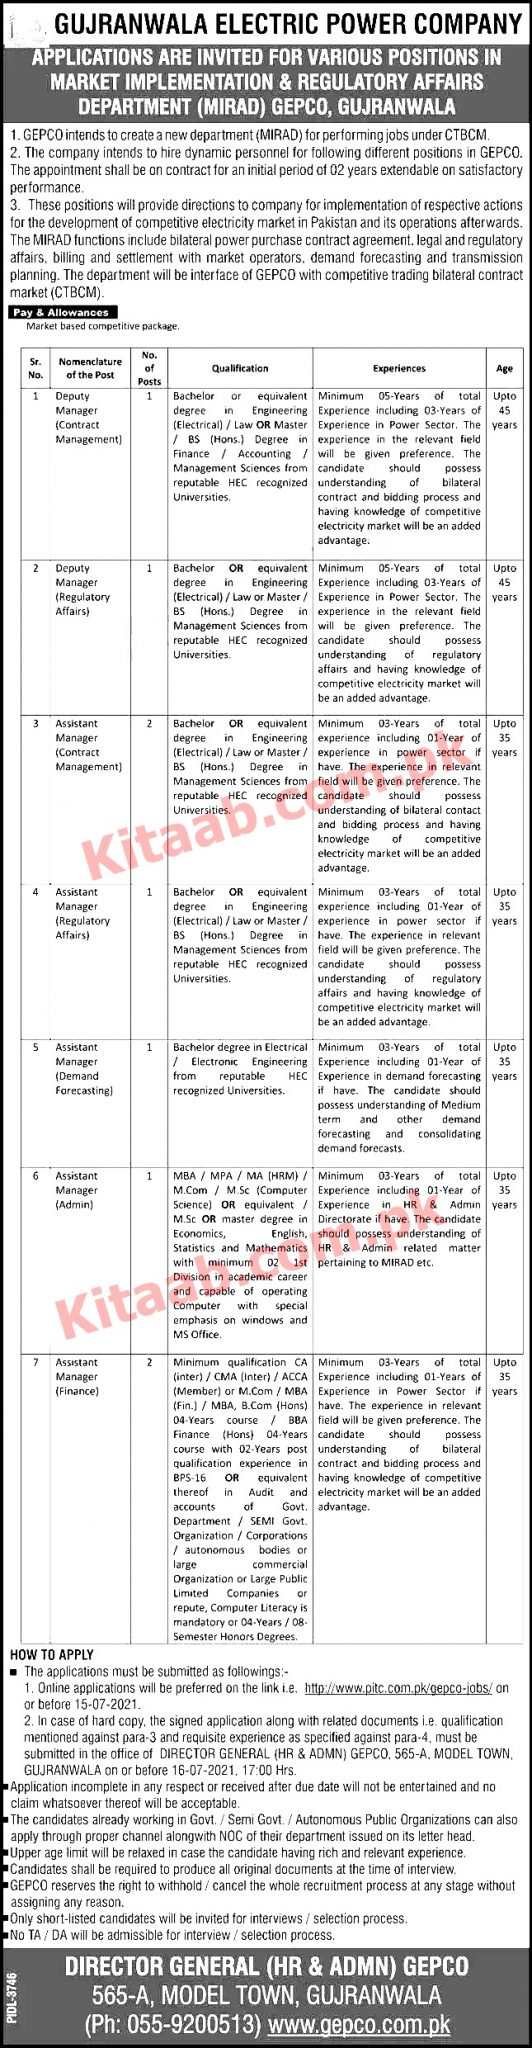 Gujranwala Electric Power Company GEPCO Jobs 2021 Interview Schedule